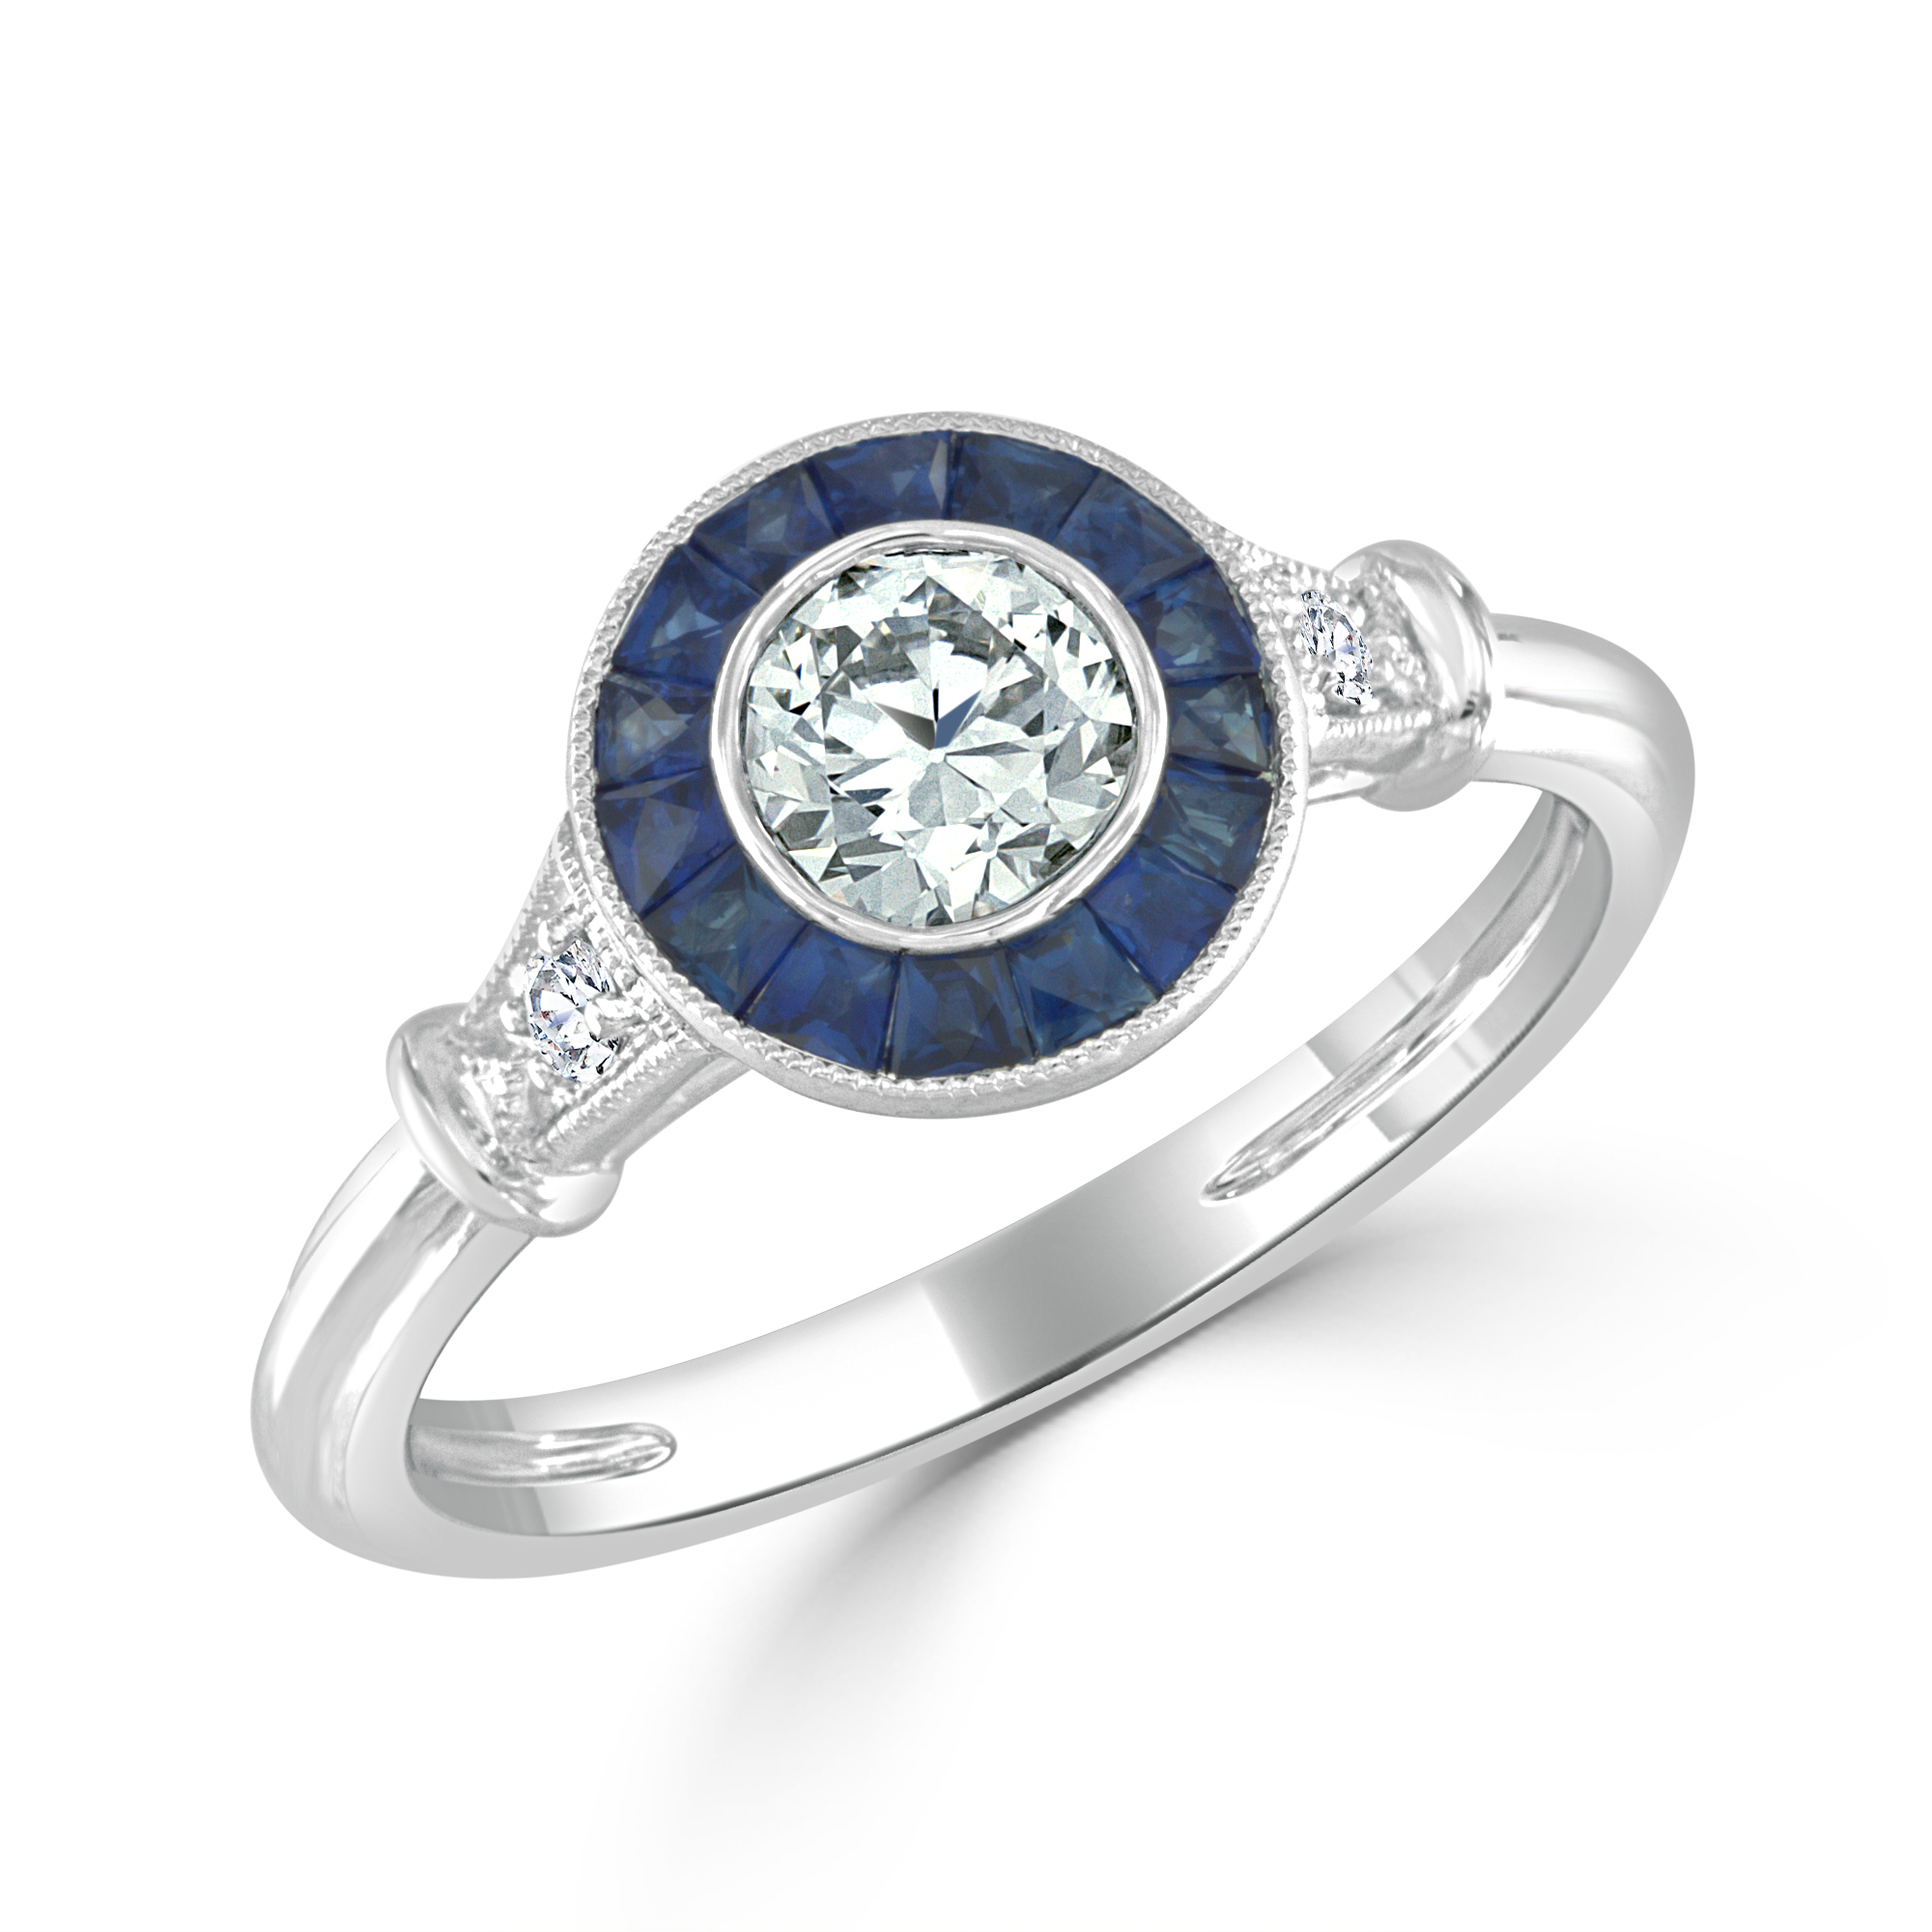 Old European and round brilliant cut diamond and sapphire engagement ring in platinum.